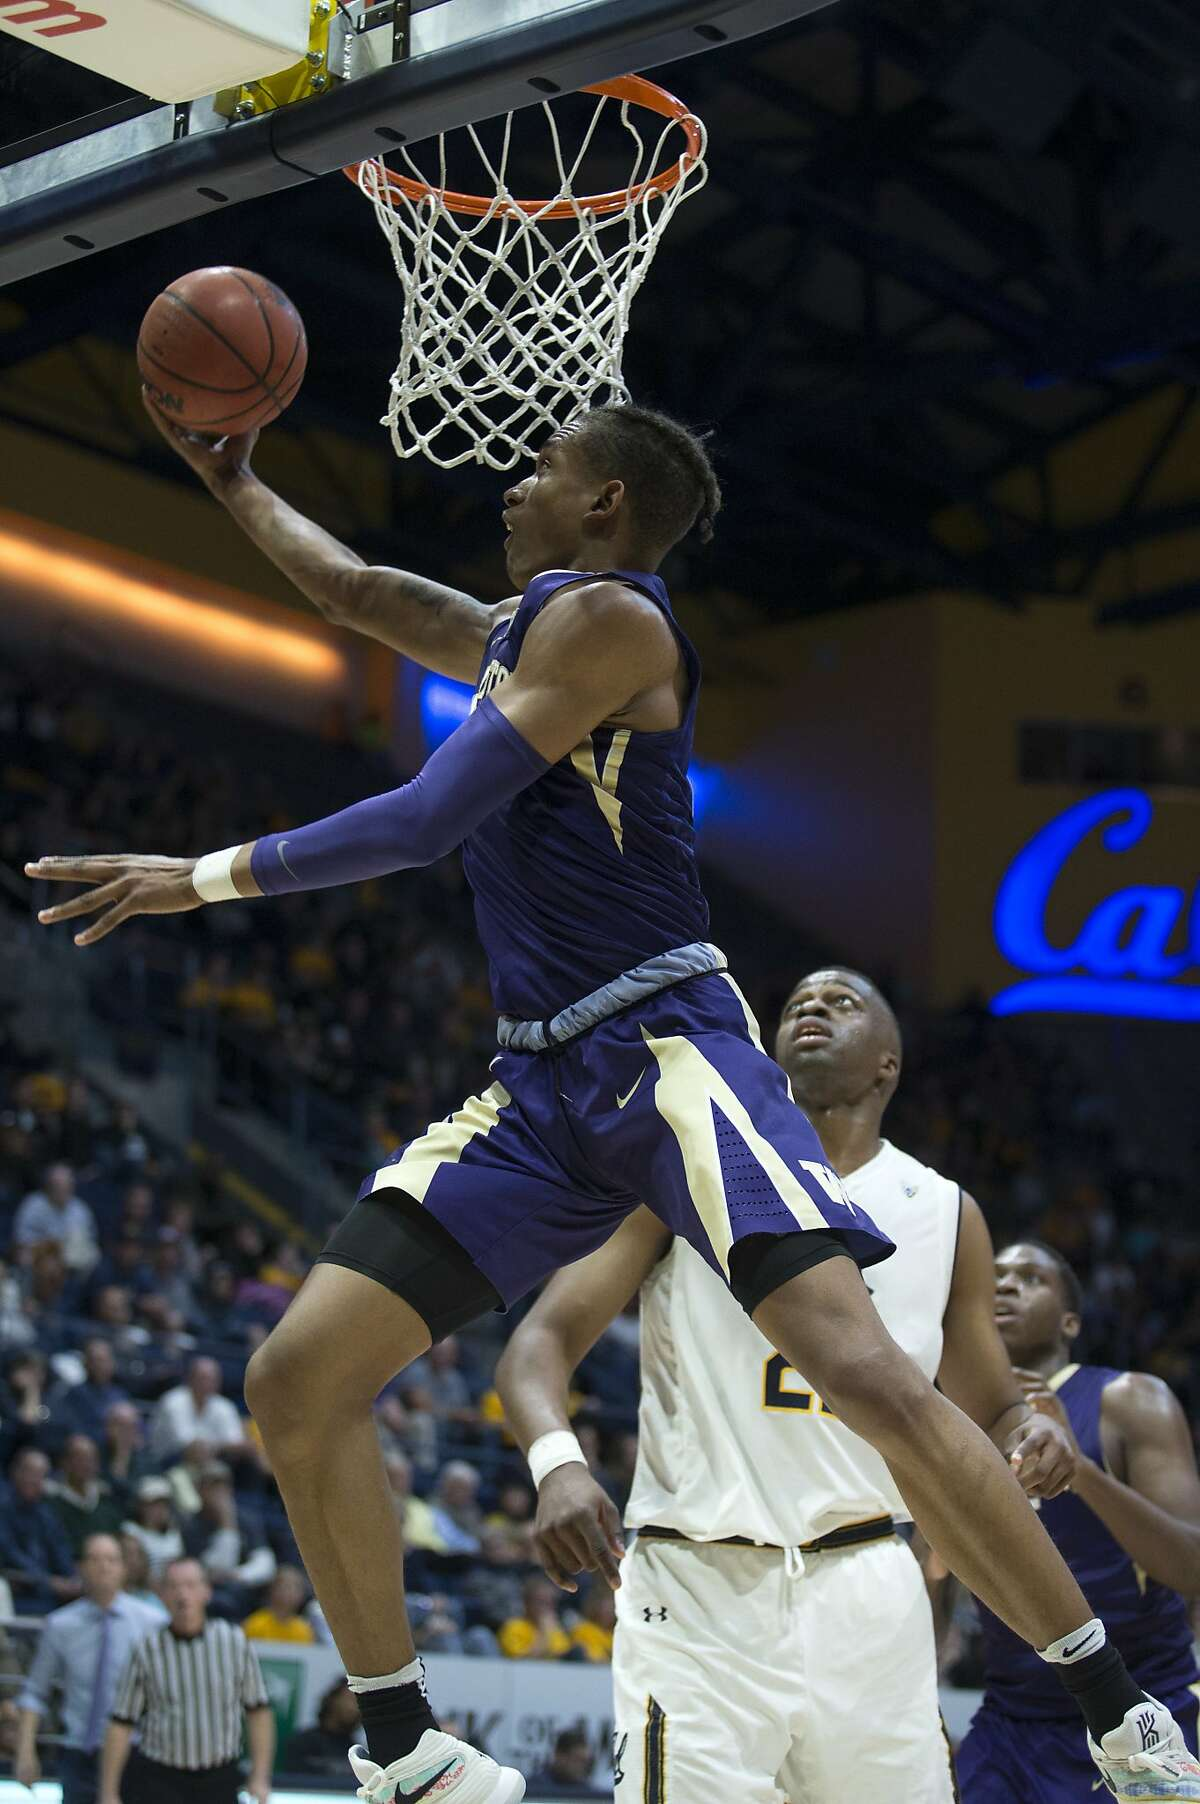 Washington's Hameir Wright, top right, shoots a reverse layup in front of California's Kingsley Okoroh (22) during the second half of an NCAA college basketball game, Saturday, Feb. 24, 2018, in Berkeley, Calif.